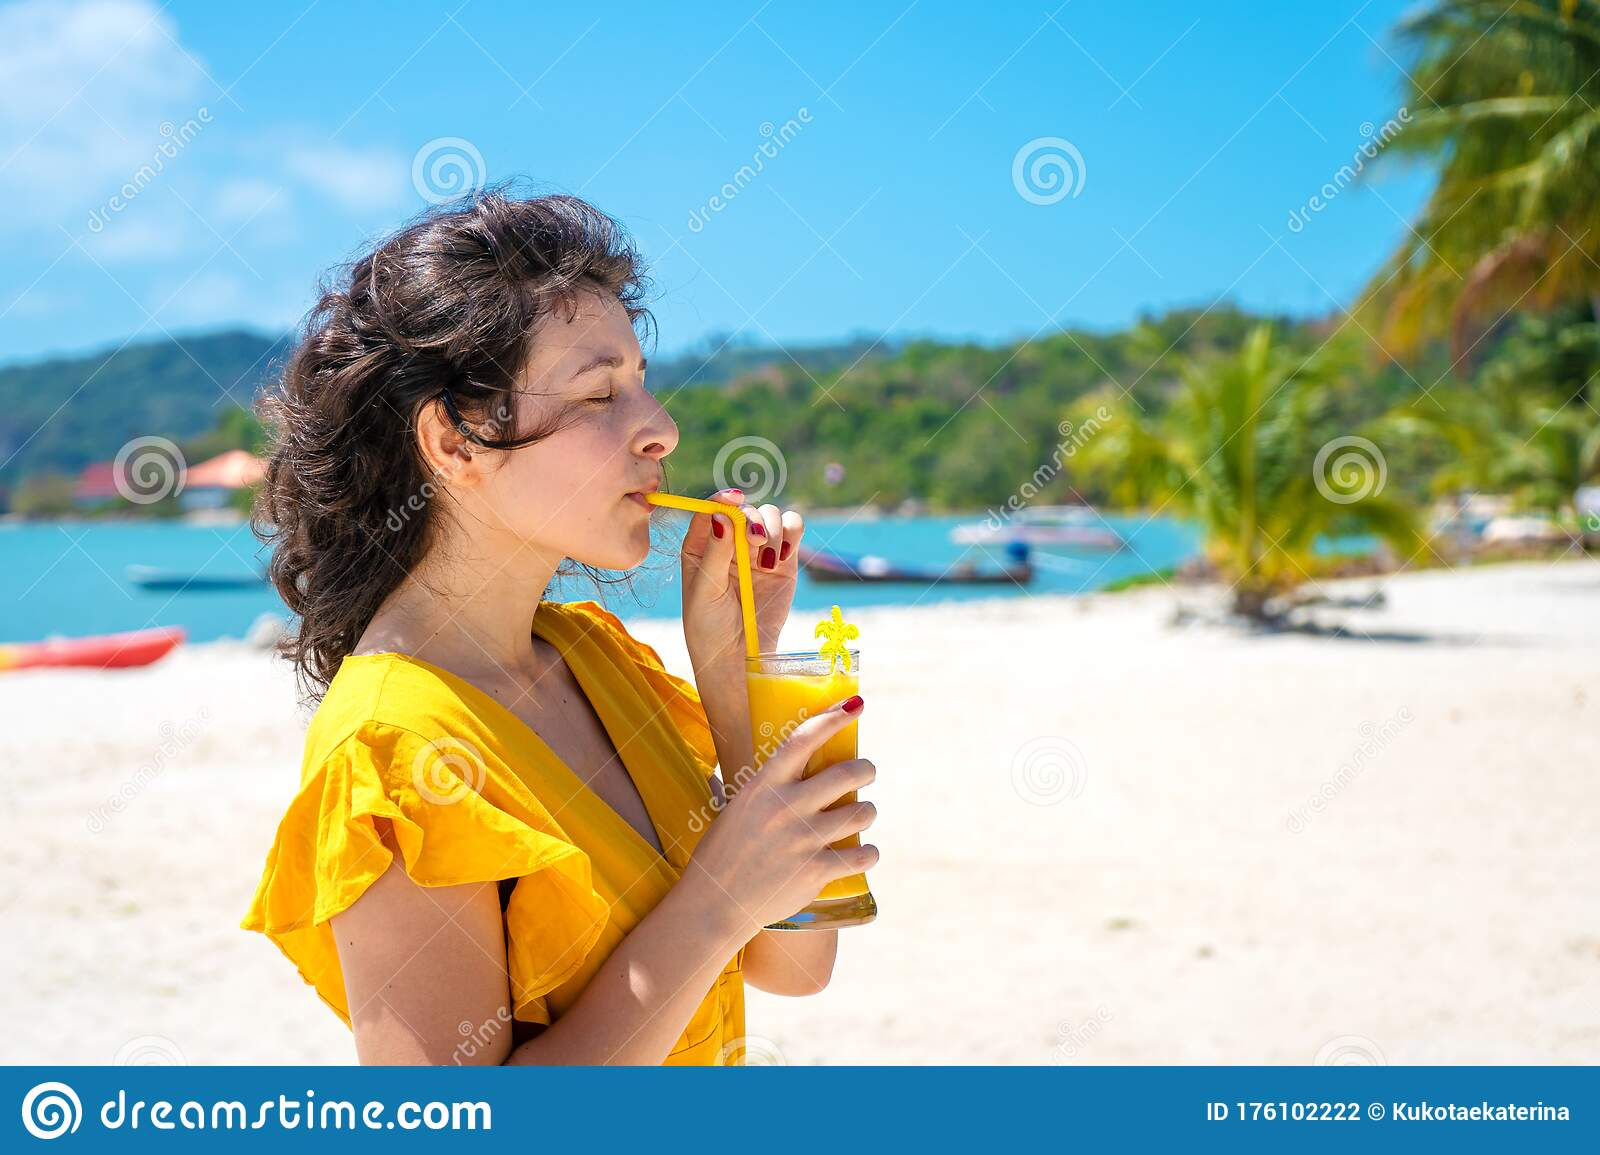 Beautiful Girl In A Yellow Dress Drinks Fresh Mango On The Beach Of A Paradise Island Perfect Vacation Stock Photo Image Of Cocktail Caucasian 176102222